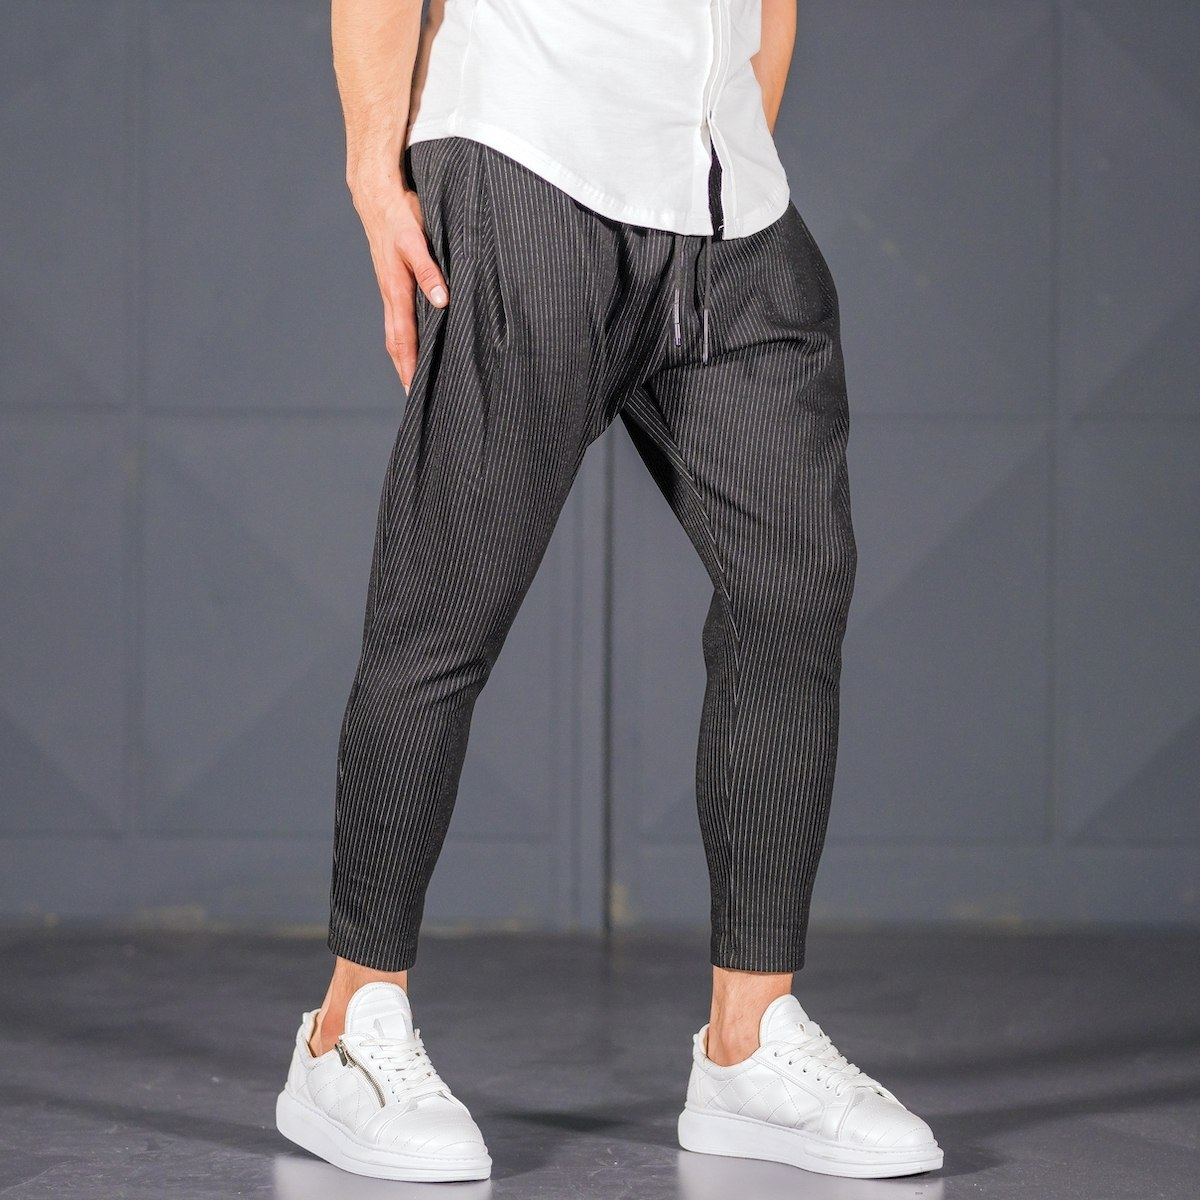 Men's Stripped Style Joggers in Black